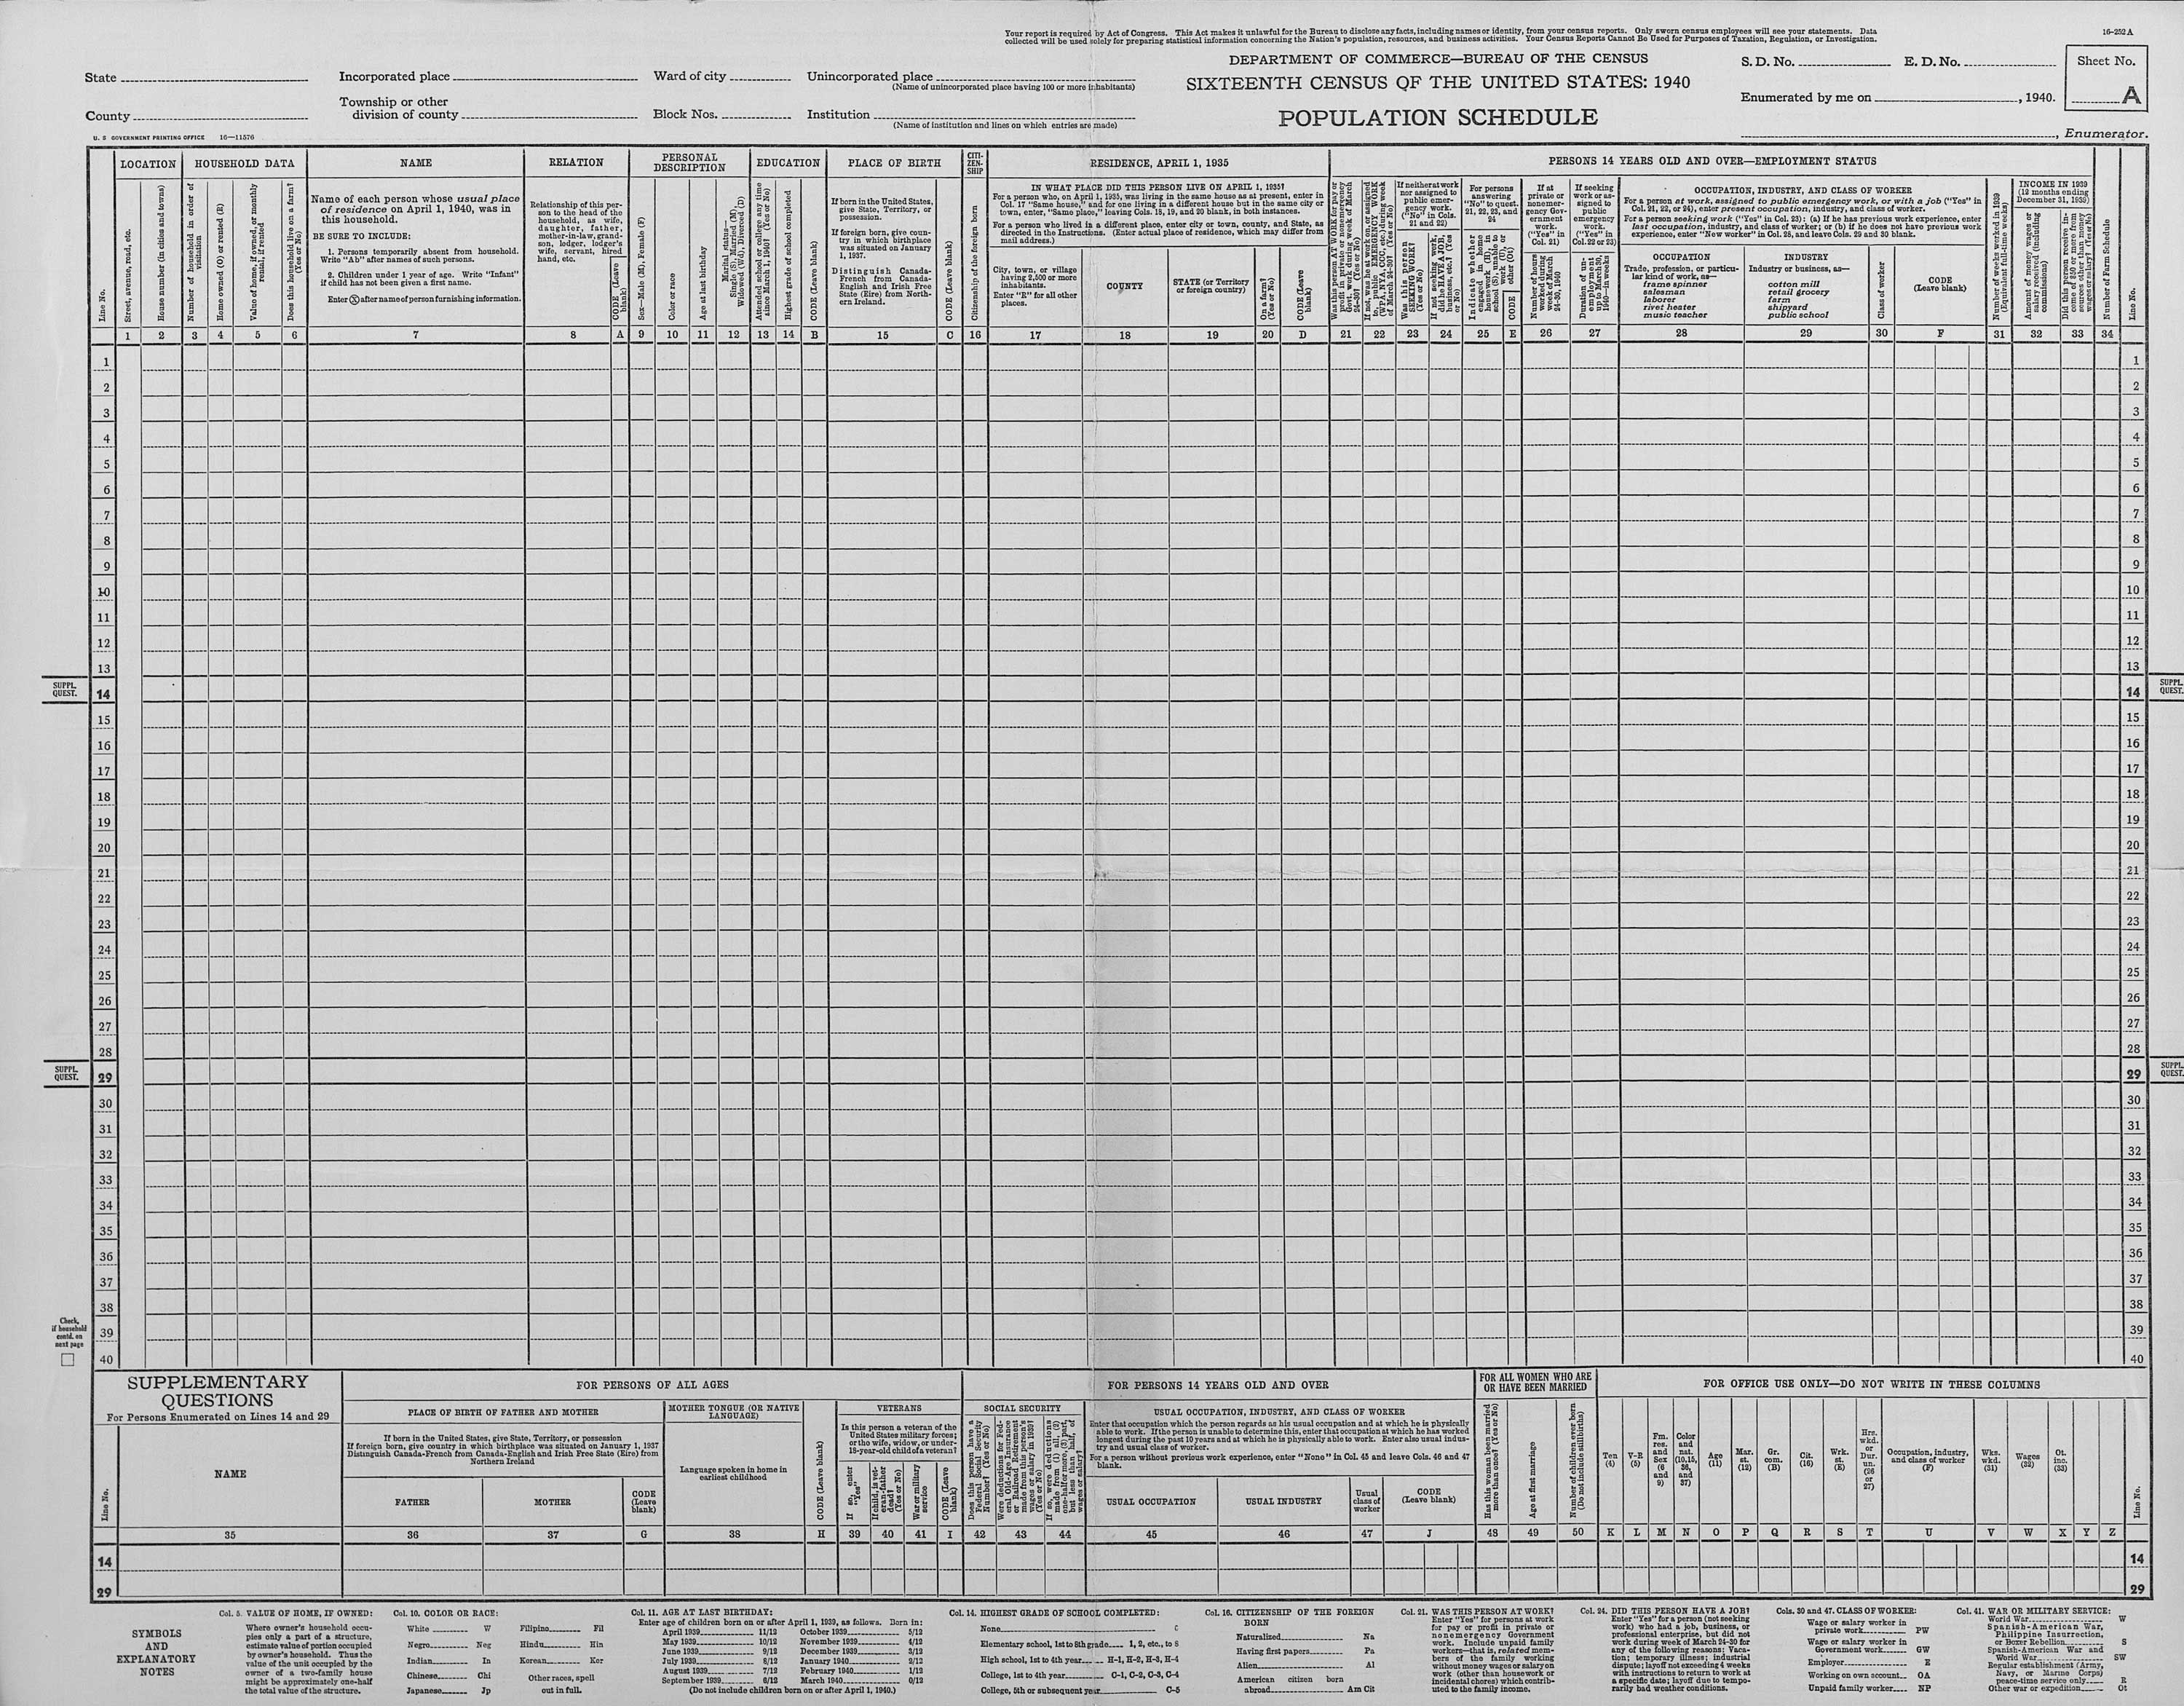 1940 federal census sheet (completed, nyc).